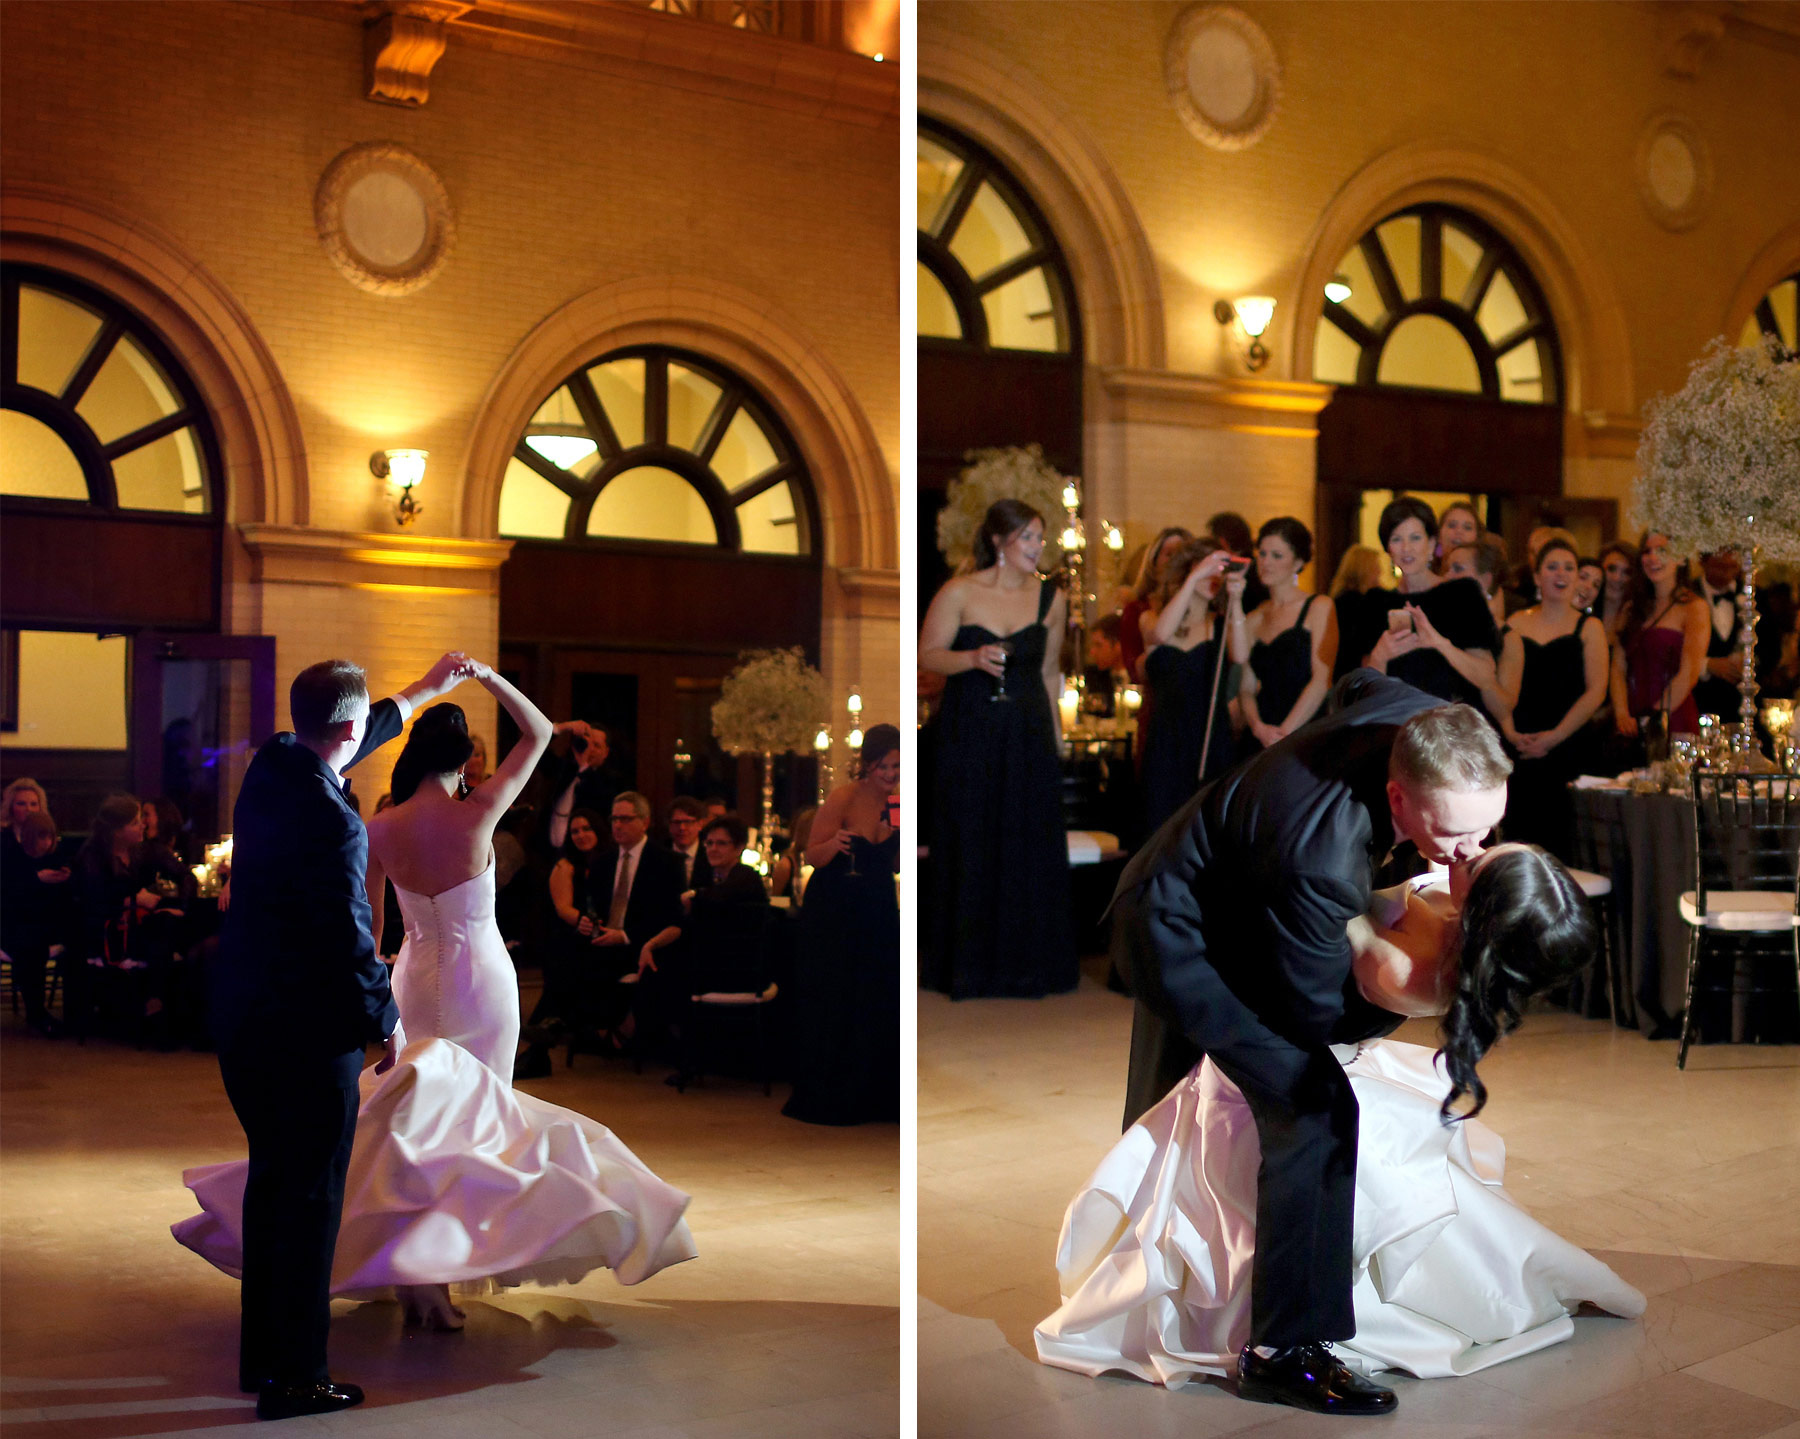 17-Minneapolis-Minnesota-Wedding-Photography-by-Vick-Photography-Downtown-The-Depot-Historic-Venue-Reception-First-Dance-Kimberly-and-Robert.jpg